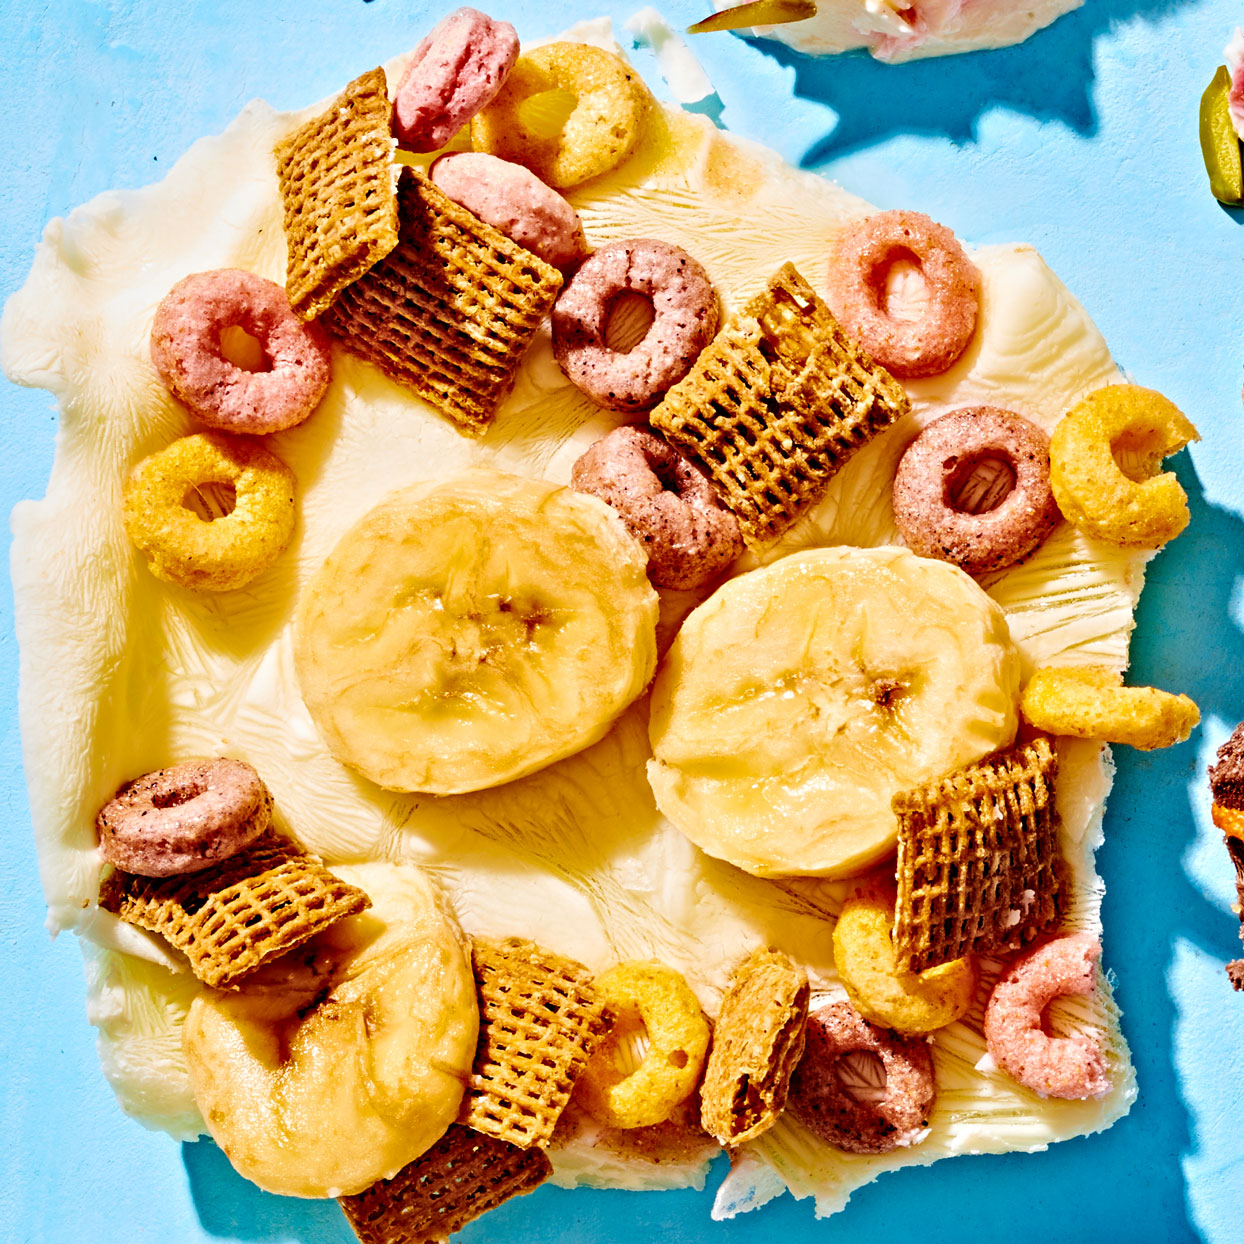 yogurt bark with bananas and cereal